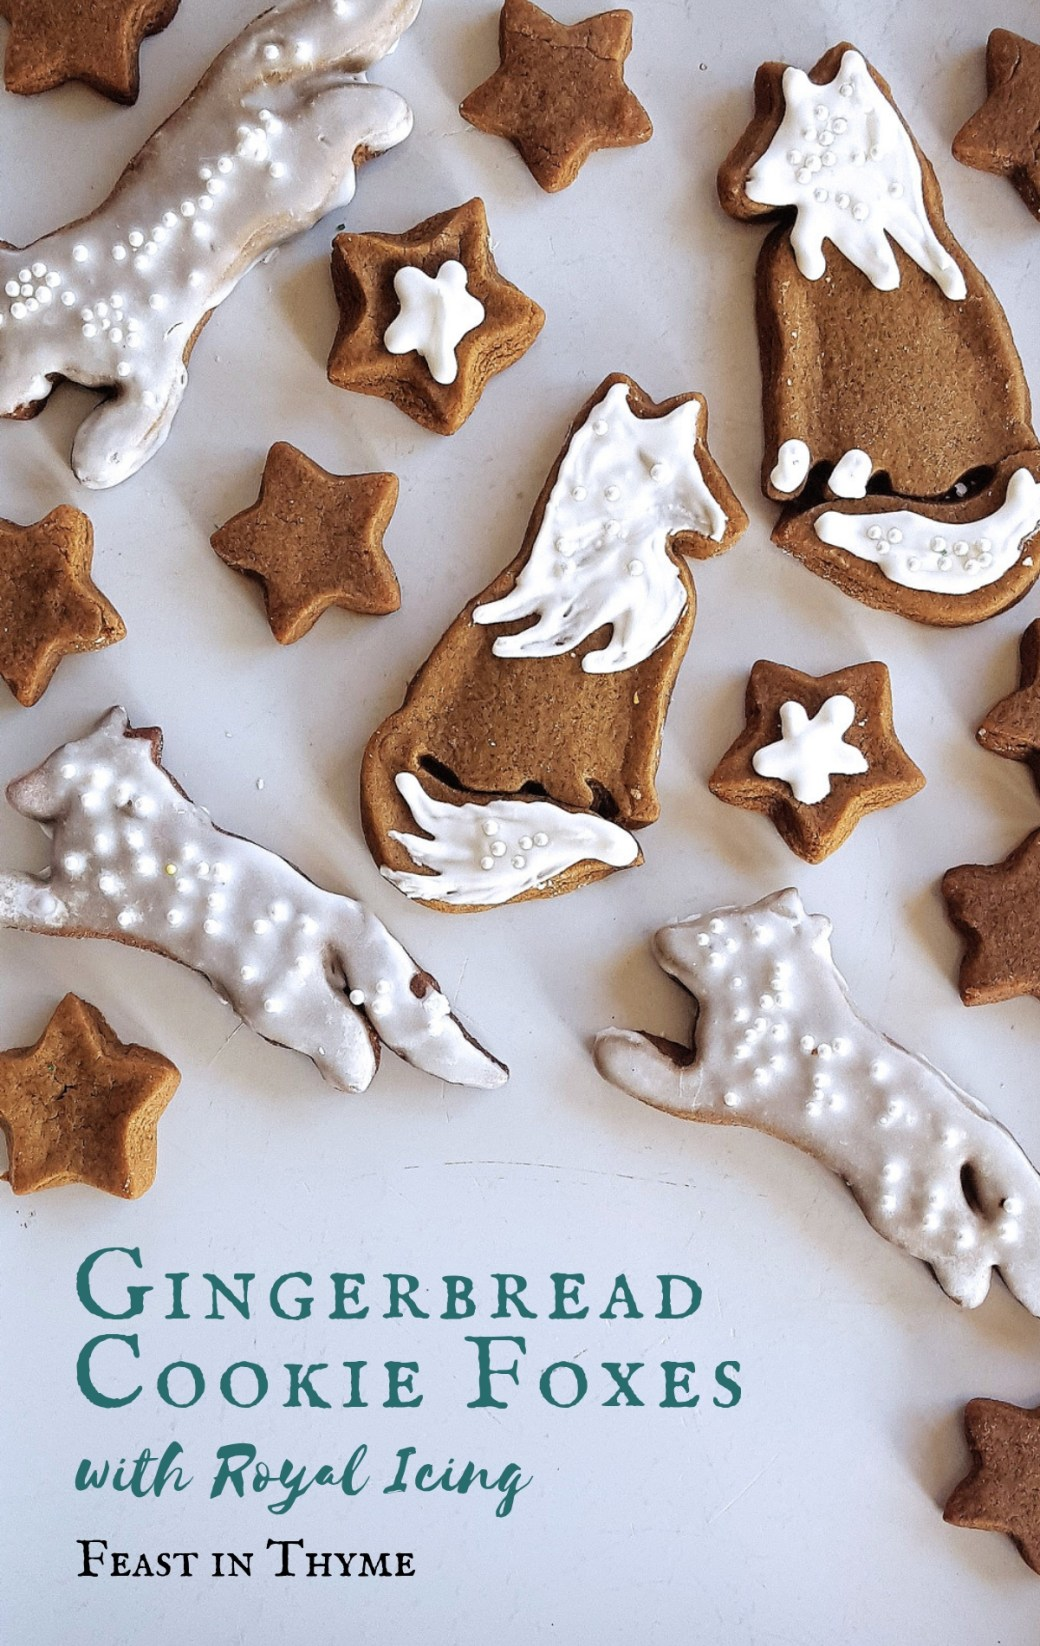 Gingerbread Cookie Foxes with Traditional Royal Icing